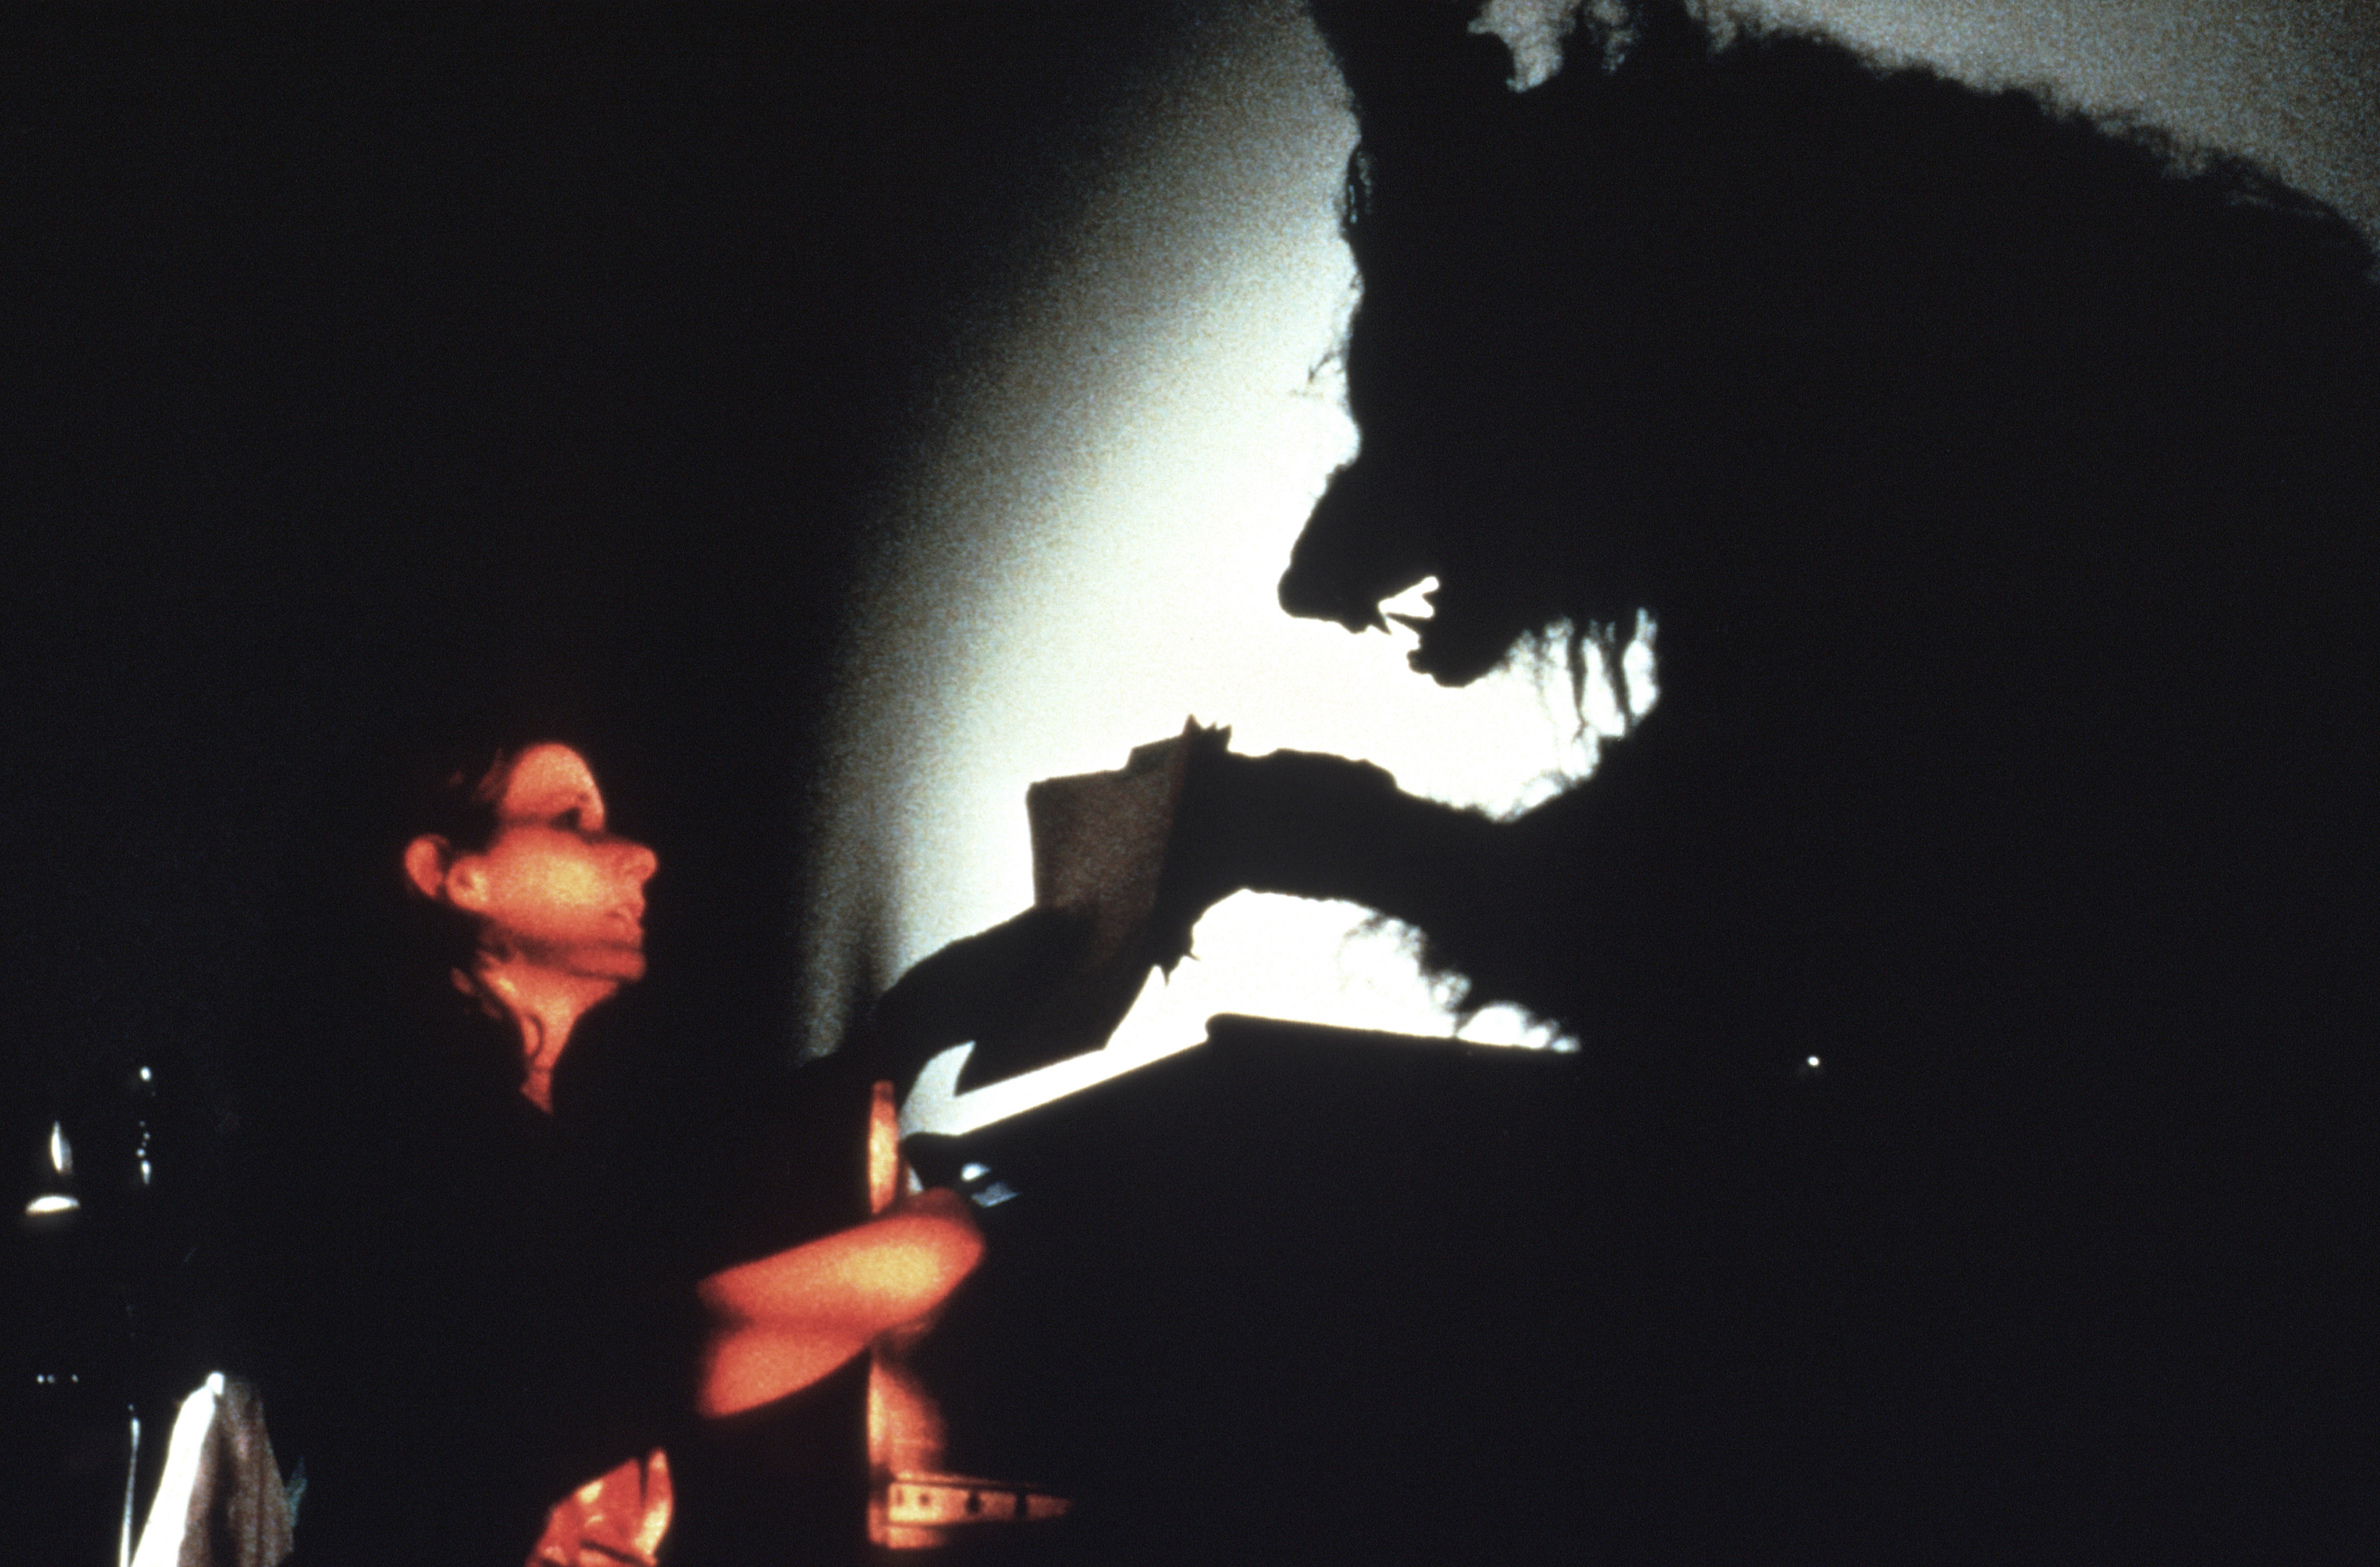 The Howling image